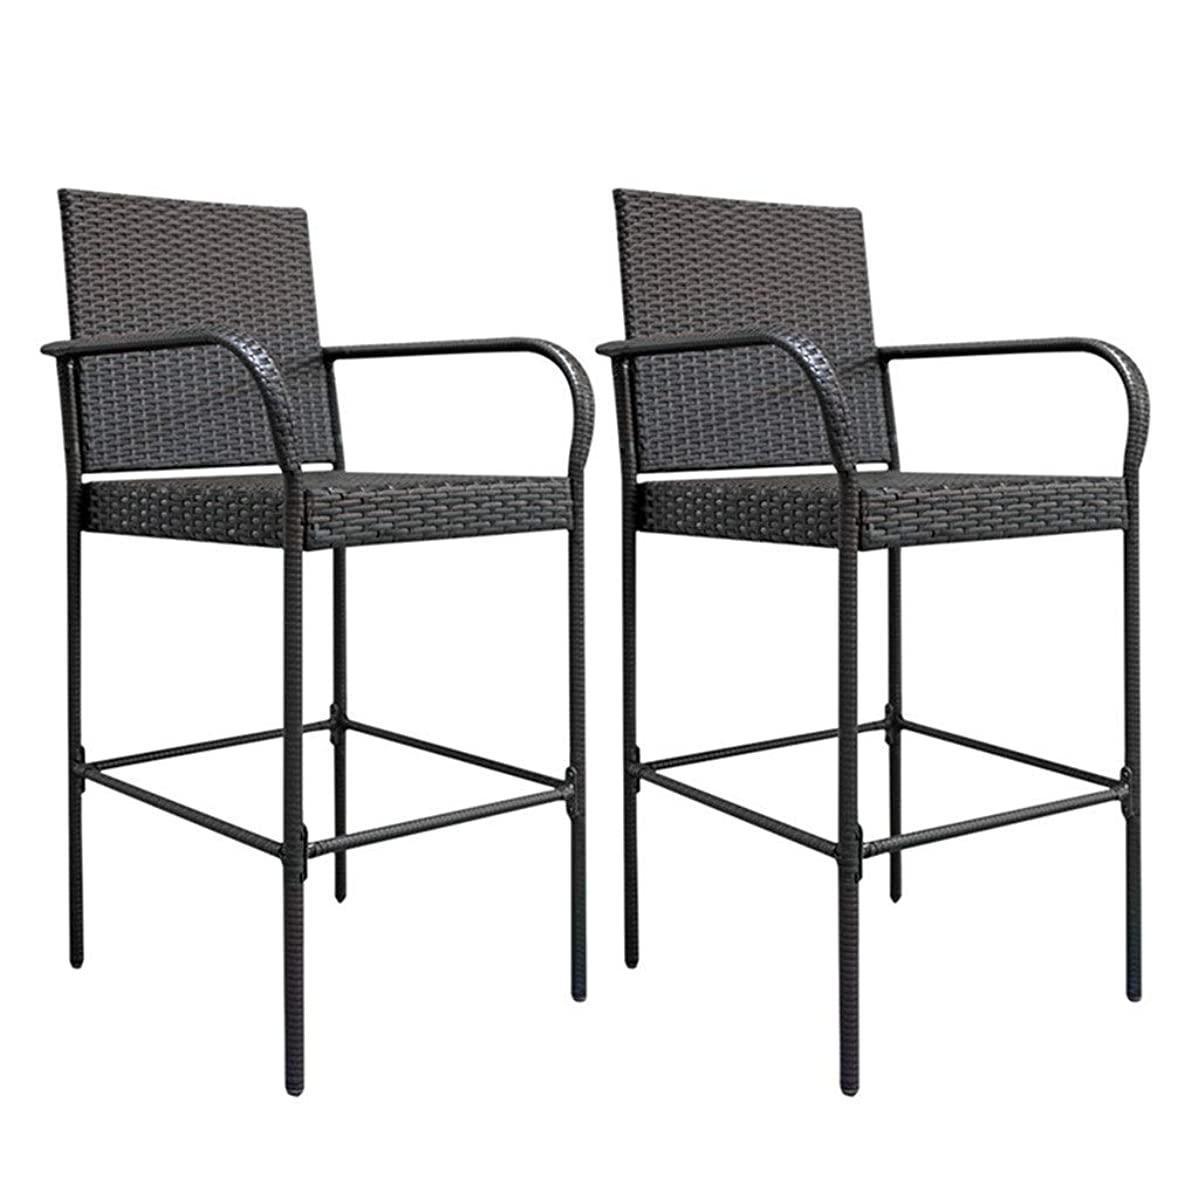 HWJ Bar Stool Set of 2 Rattan Wicker Outdoor Backyard Chair Patio Furniture Chair with Armrest and Footrest for Garden Pool Lawn Backyard Study Steel Frame Bar Chairs Furniture, Brown